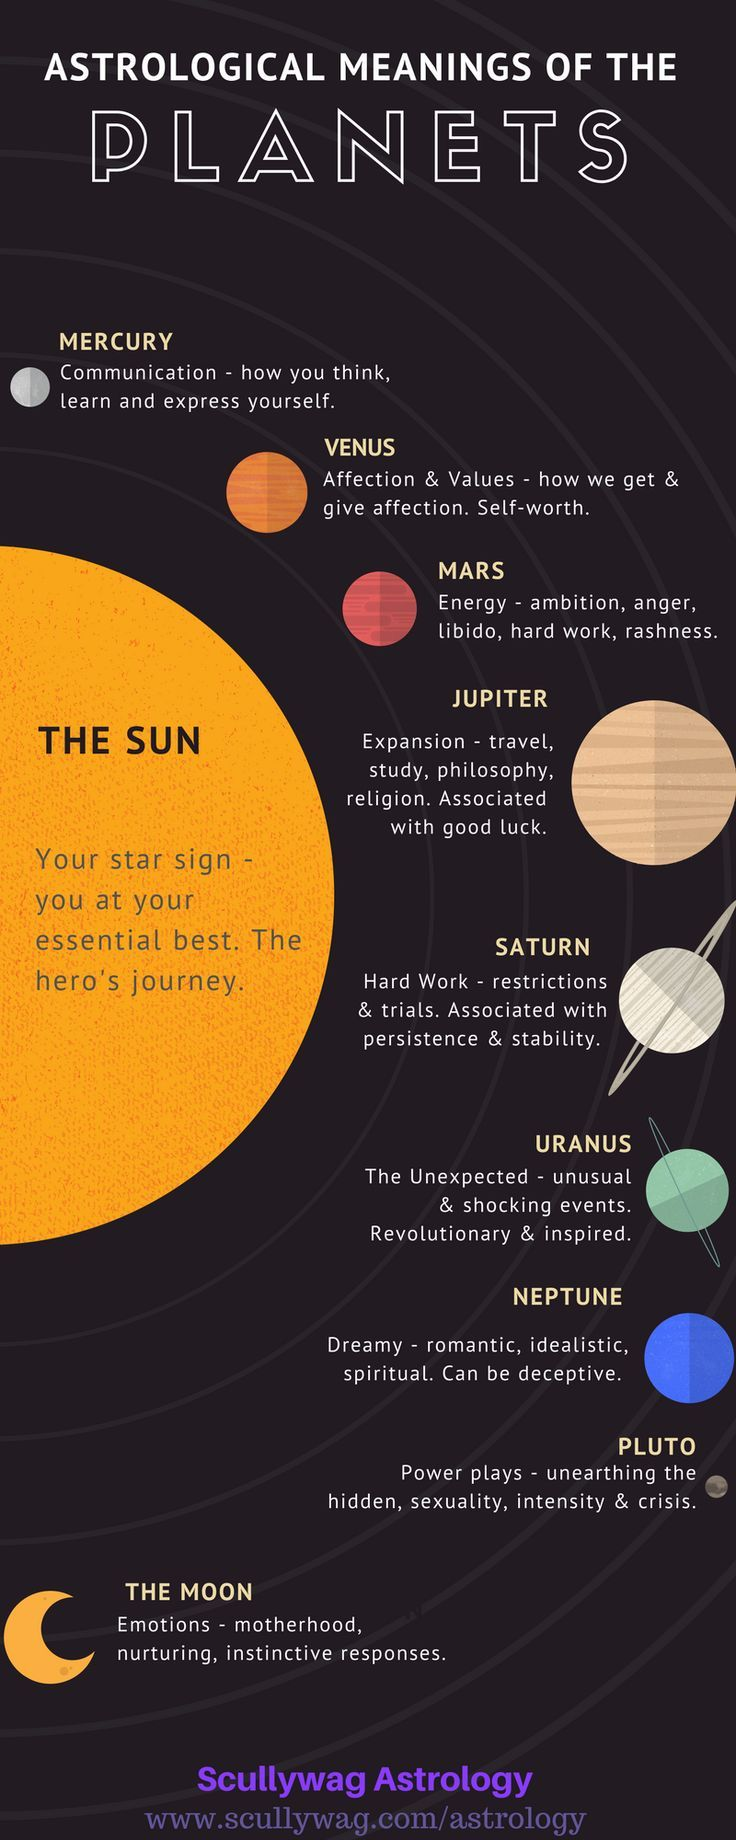 94 best astrology and zodiac art images on pinterest astrology what the planets represent in astrology nvjuhfo Gallery